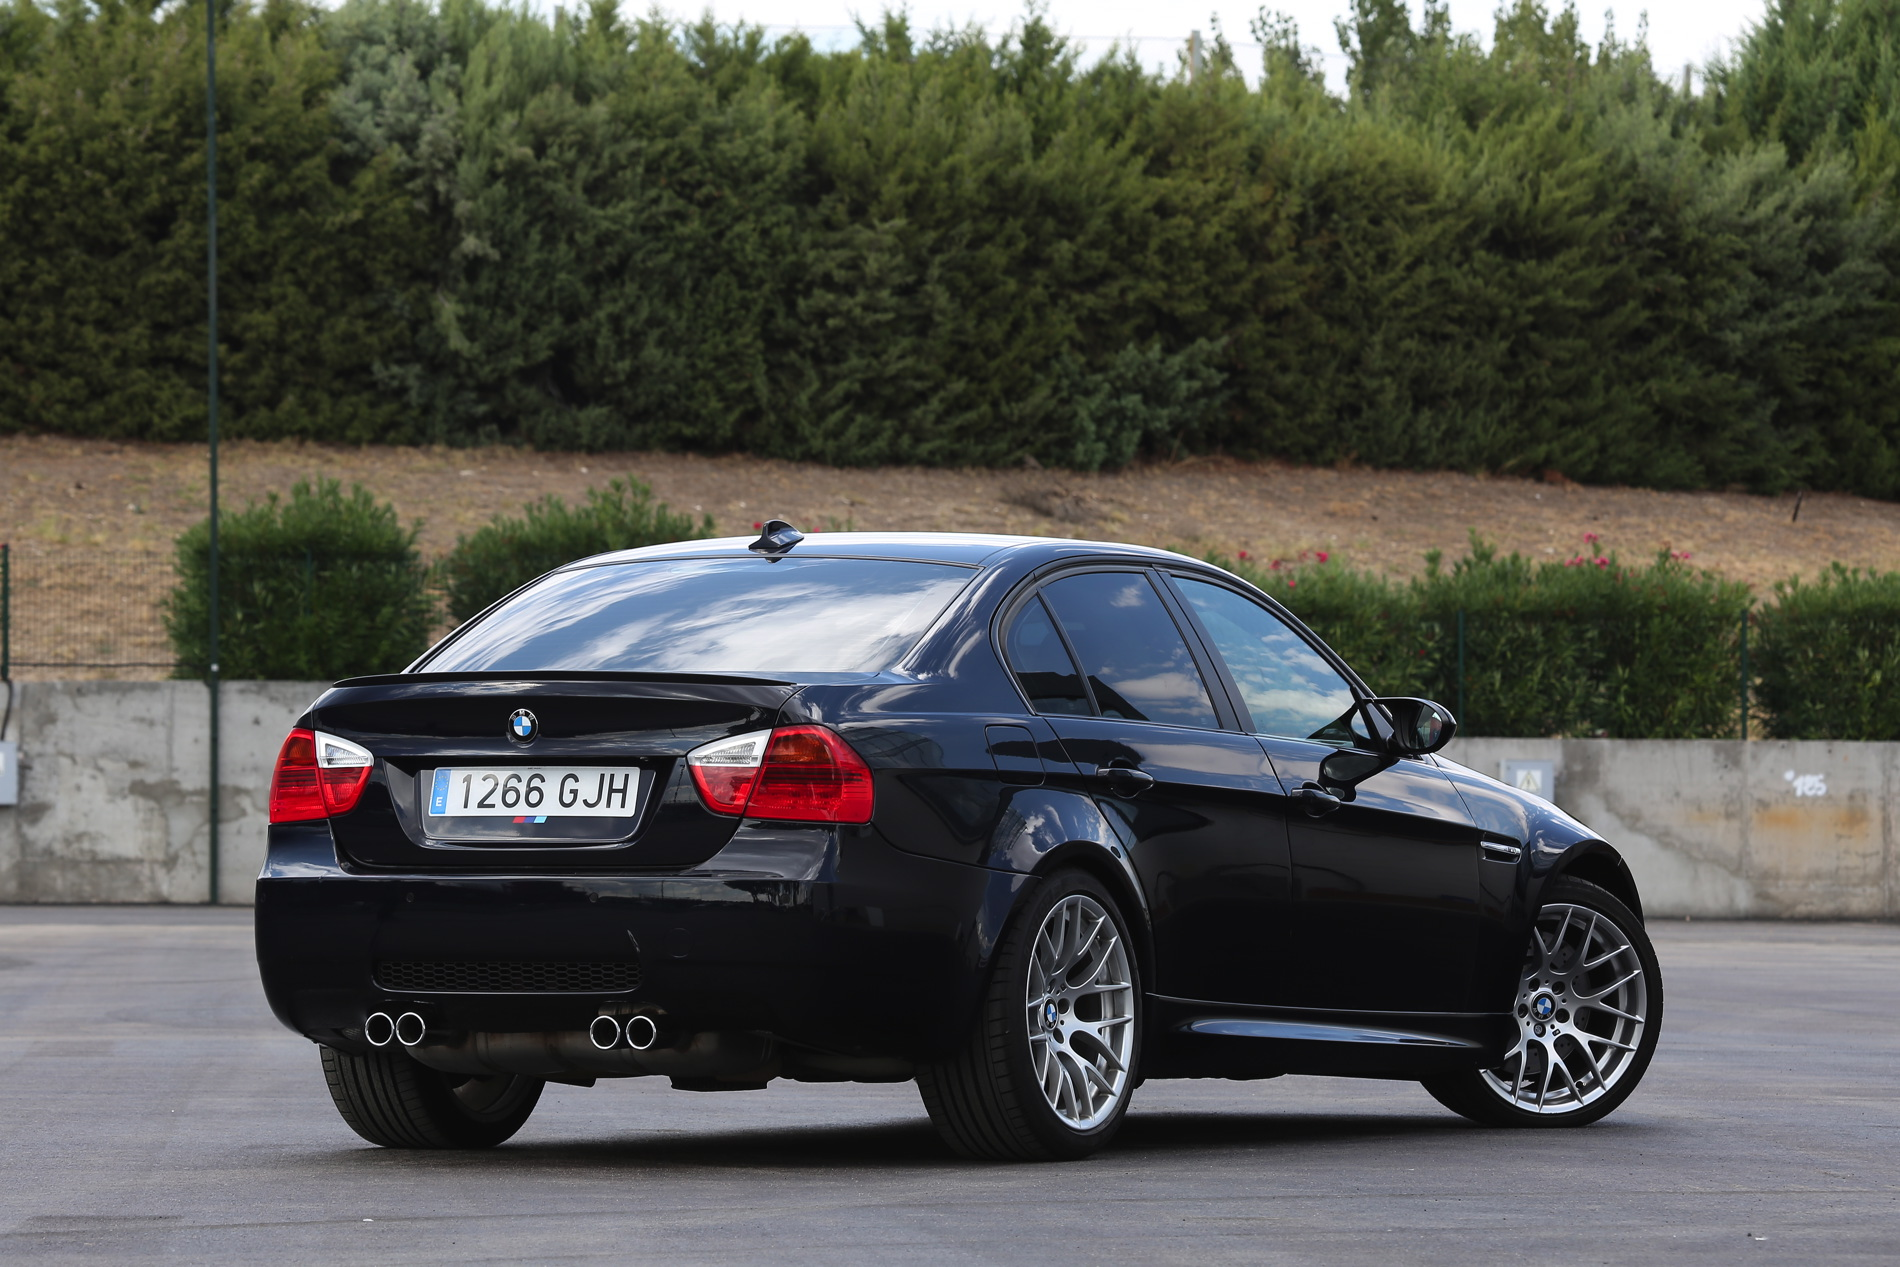 4 Door Sedan >> The BMW E90 M3 is still quite a looker